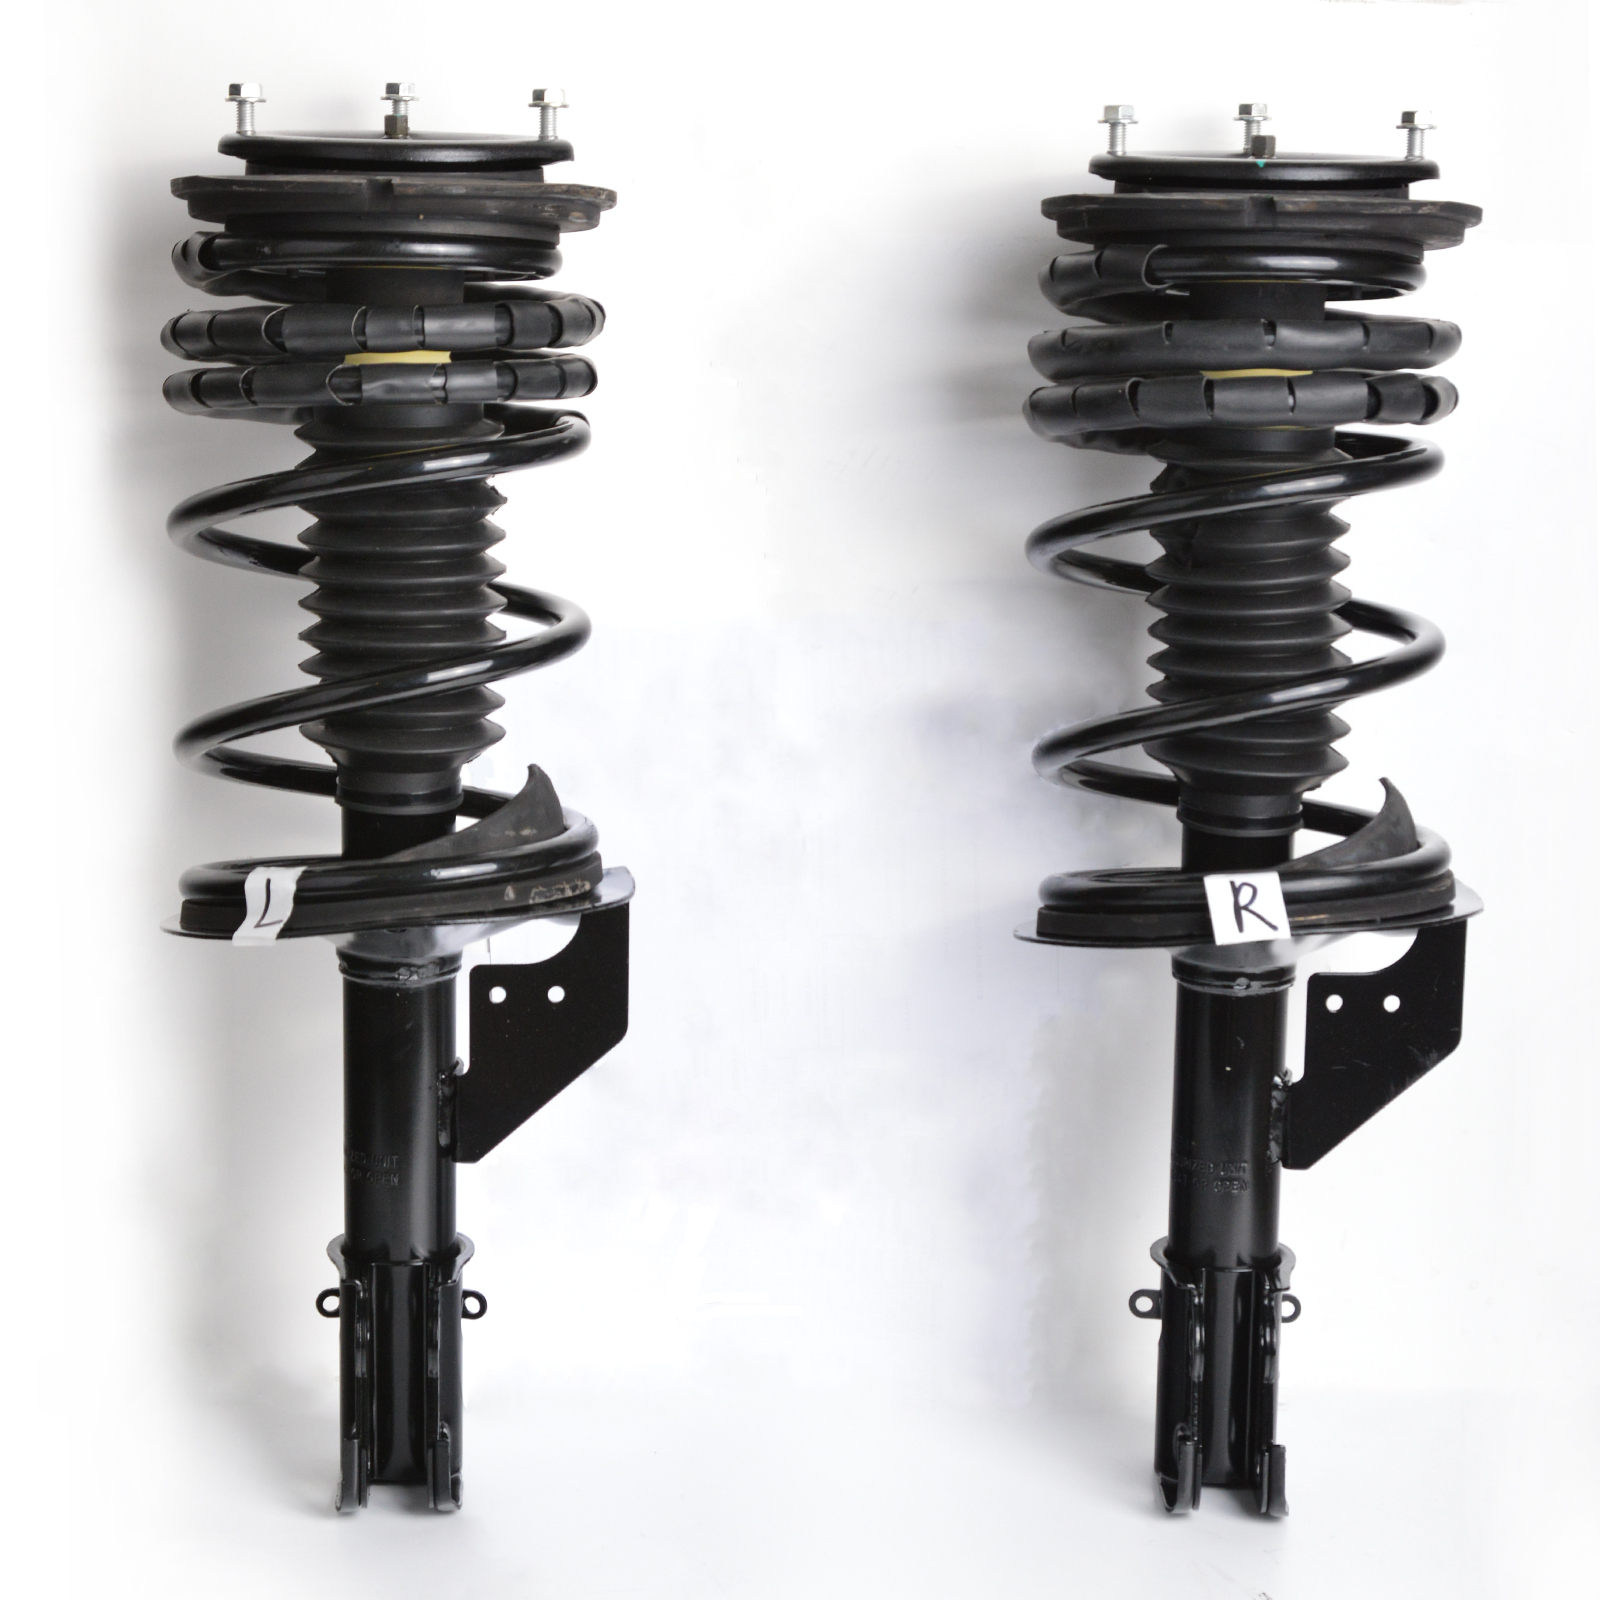 Front Struts /& Springs Left /& Right Pair Set for 95-99 Dodge Plymouth Neon